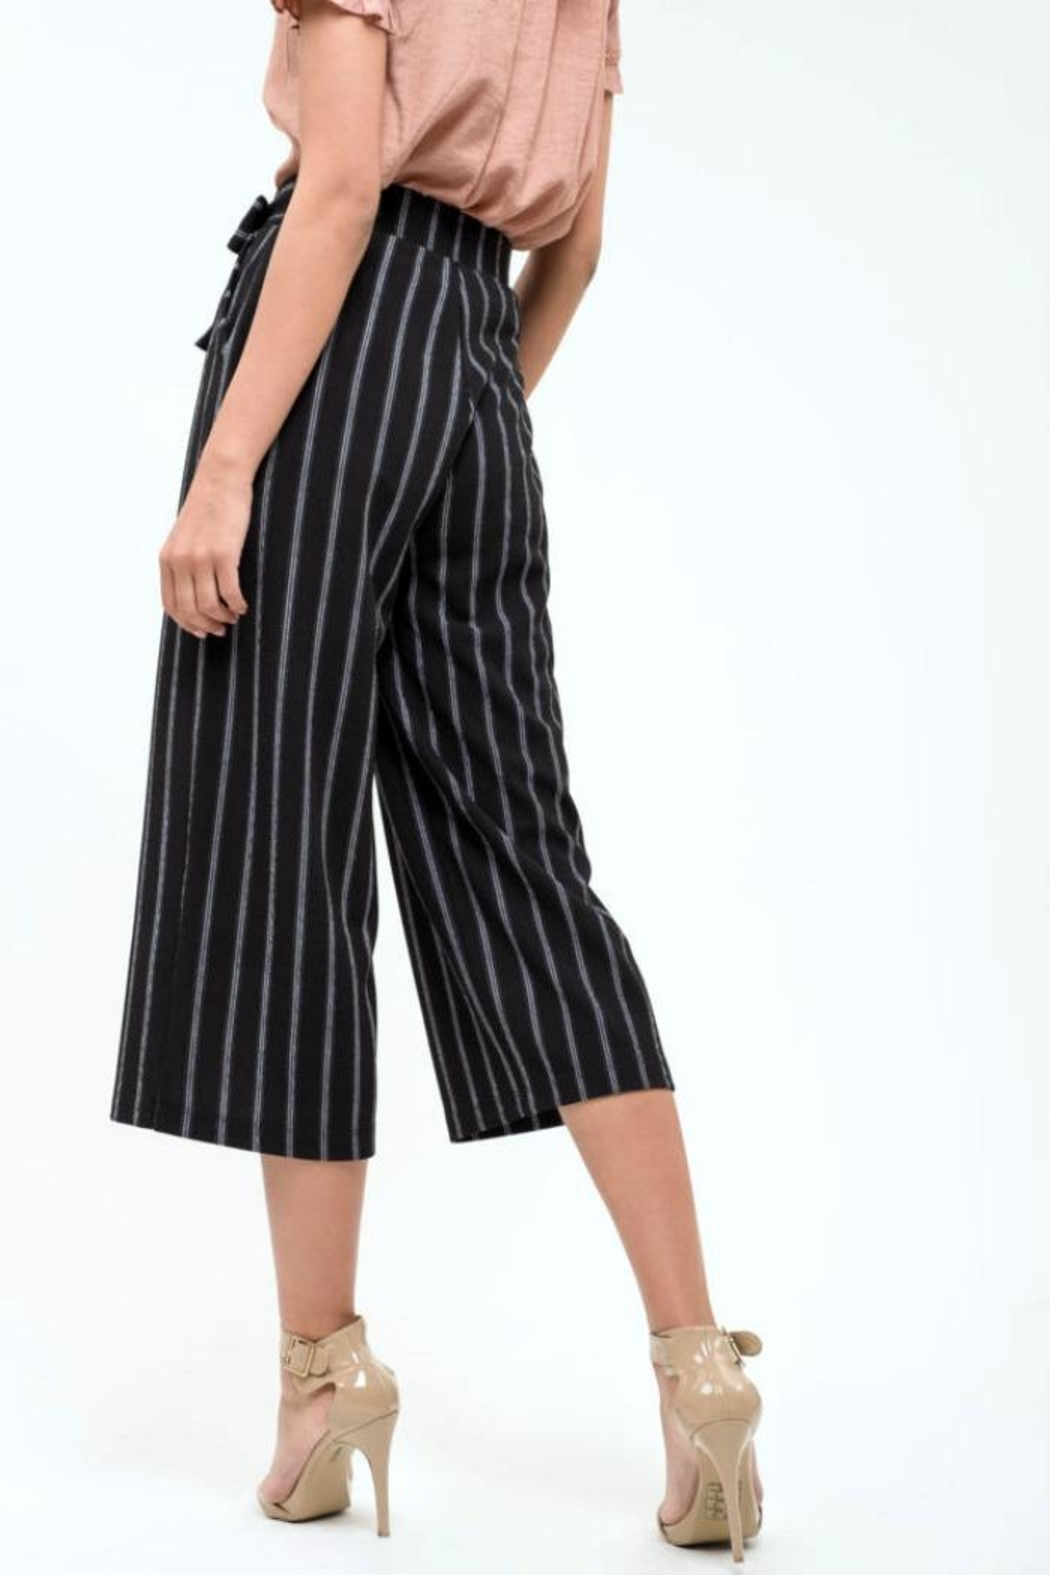 Blu Pepper Pinstripe Culottes Pants - Back Cropped Image